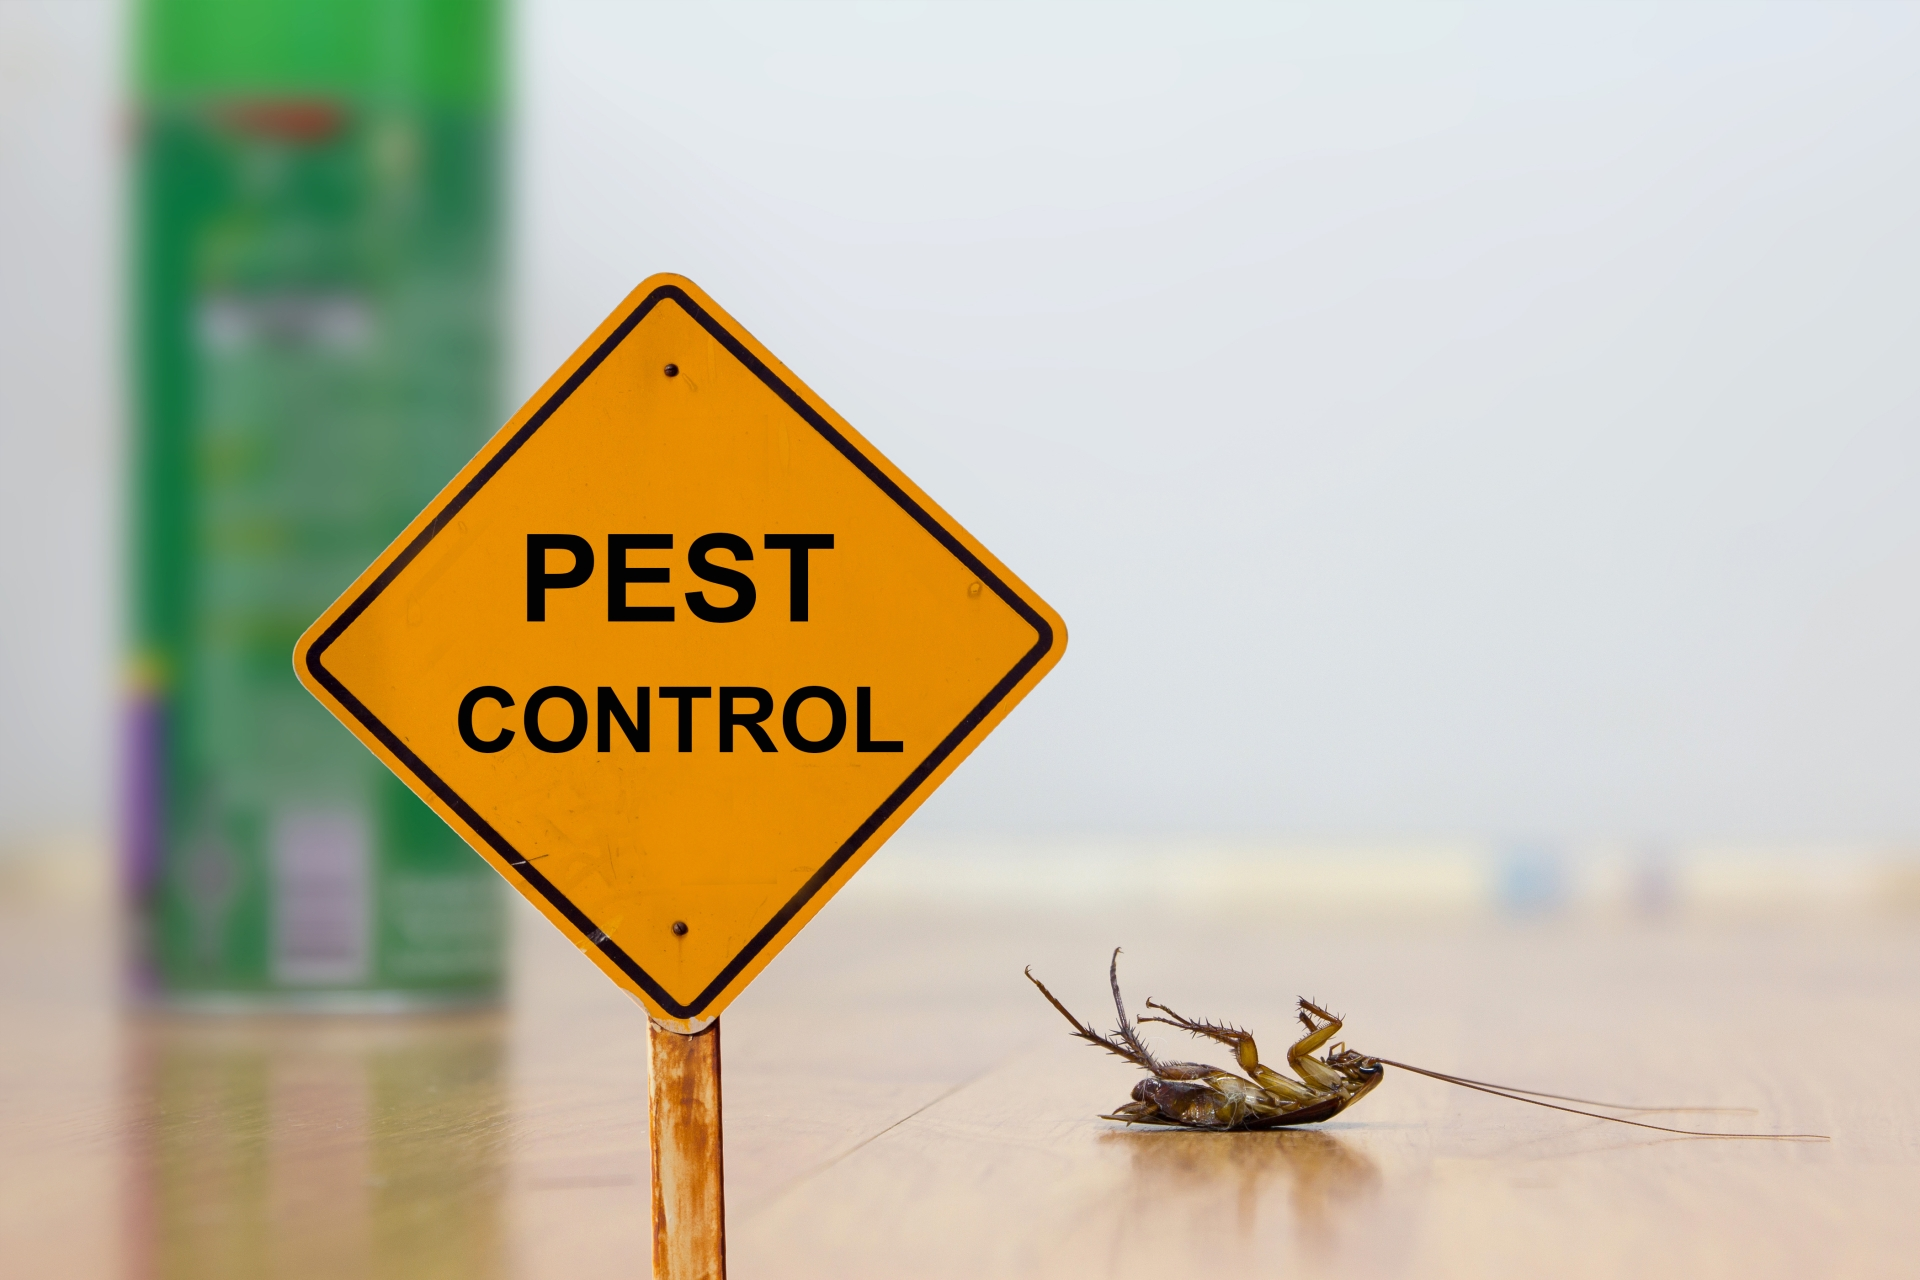 24 Hour Pest Control, Pest Control in Totteridge, Whetstone, N20. Call Now 020 8166 9746